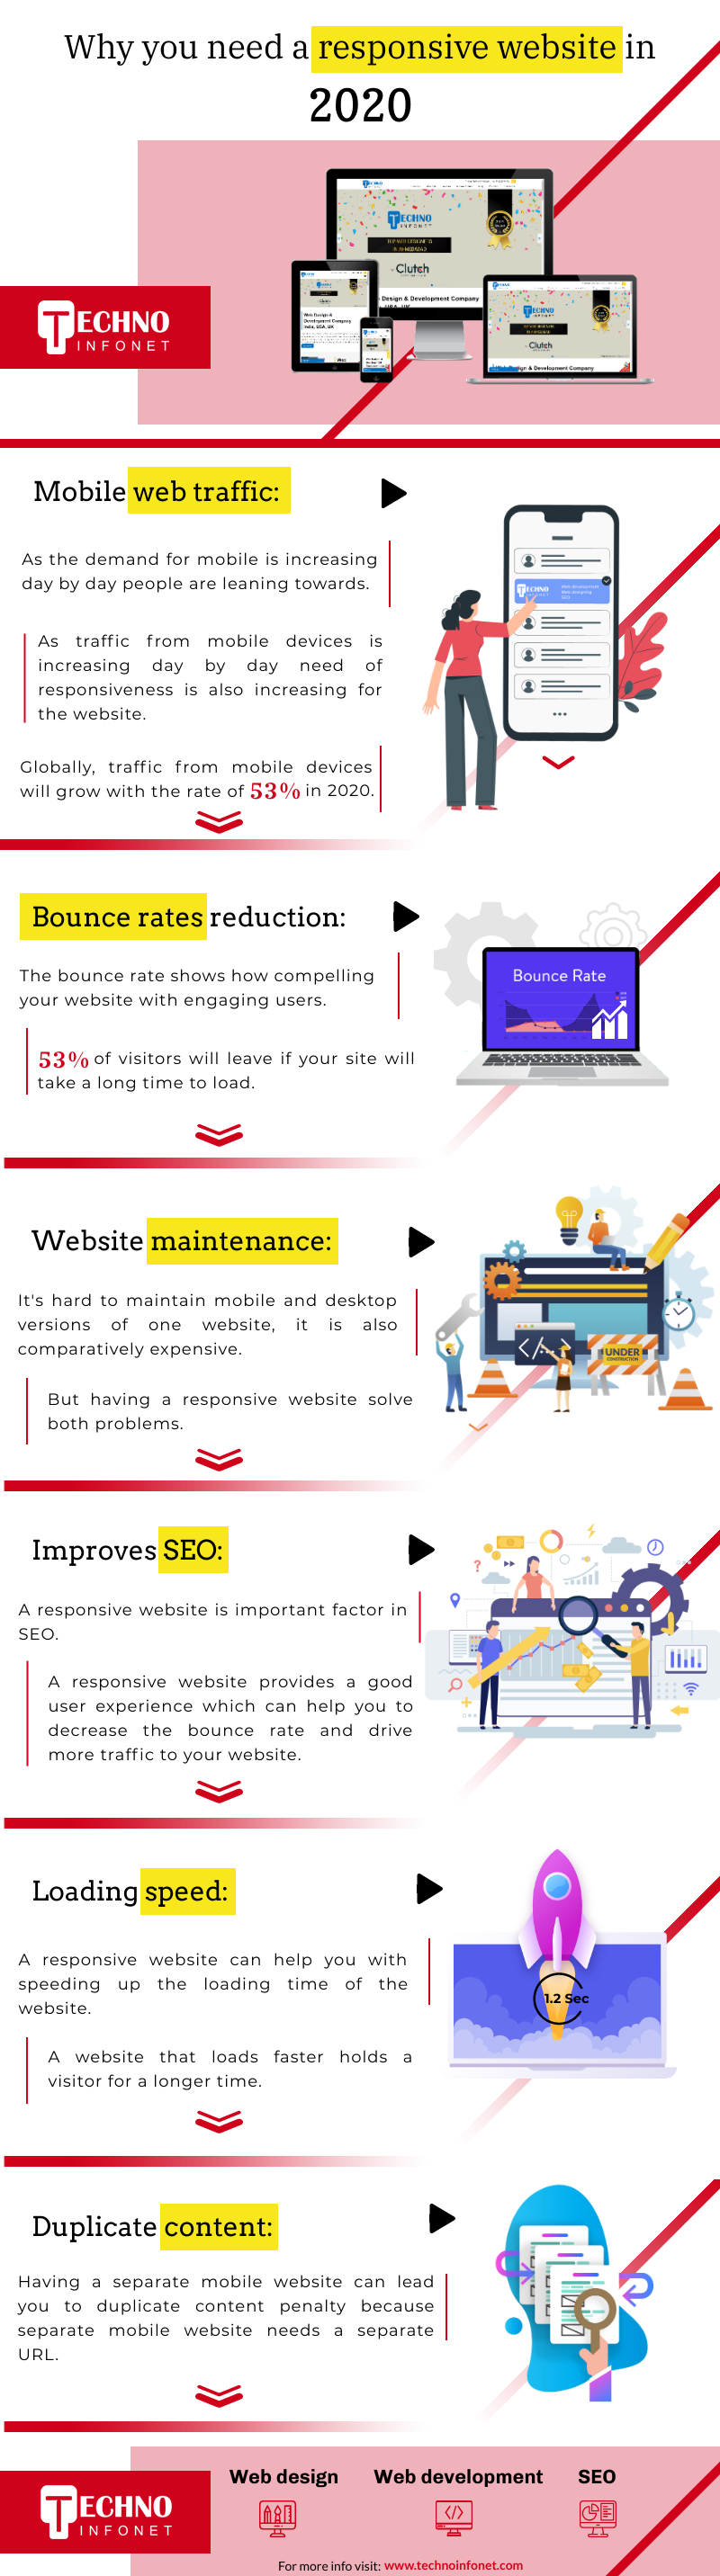 Why you need a responsive website in 2020